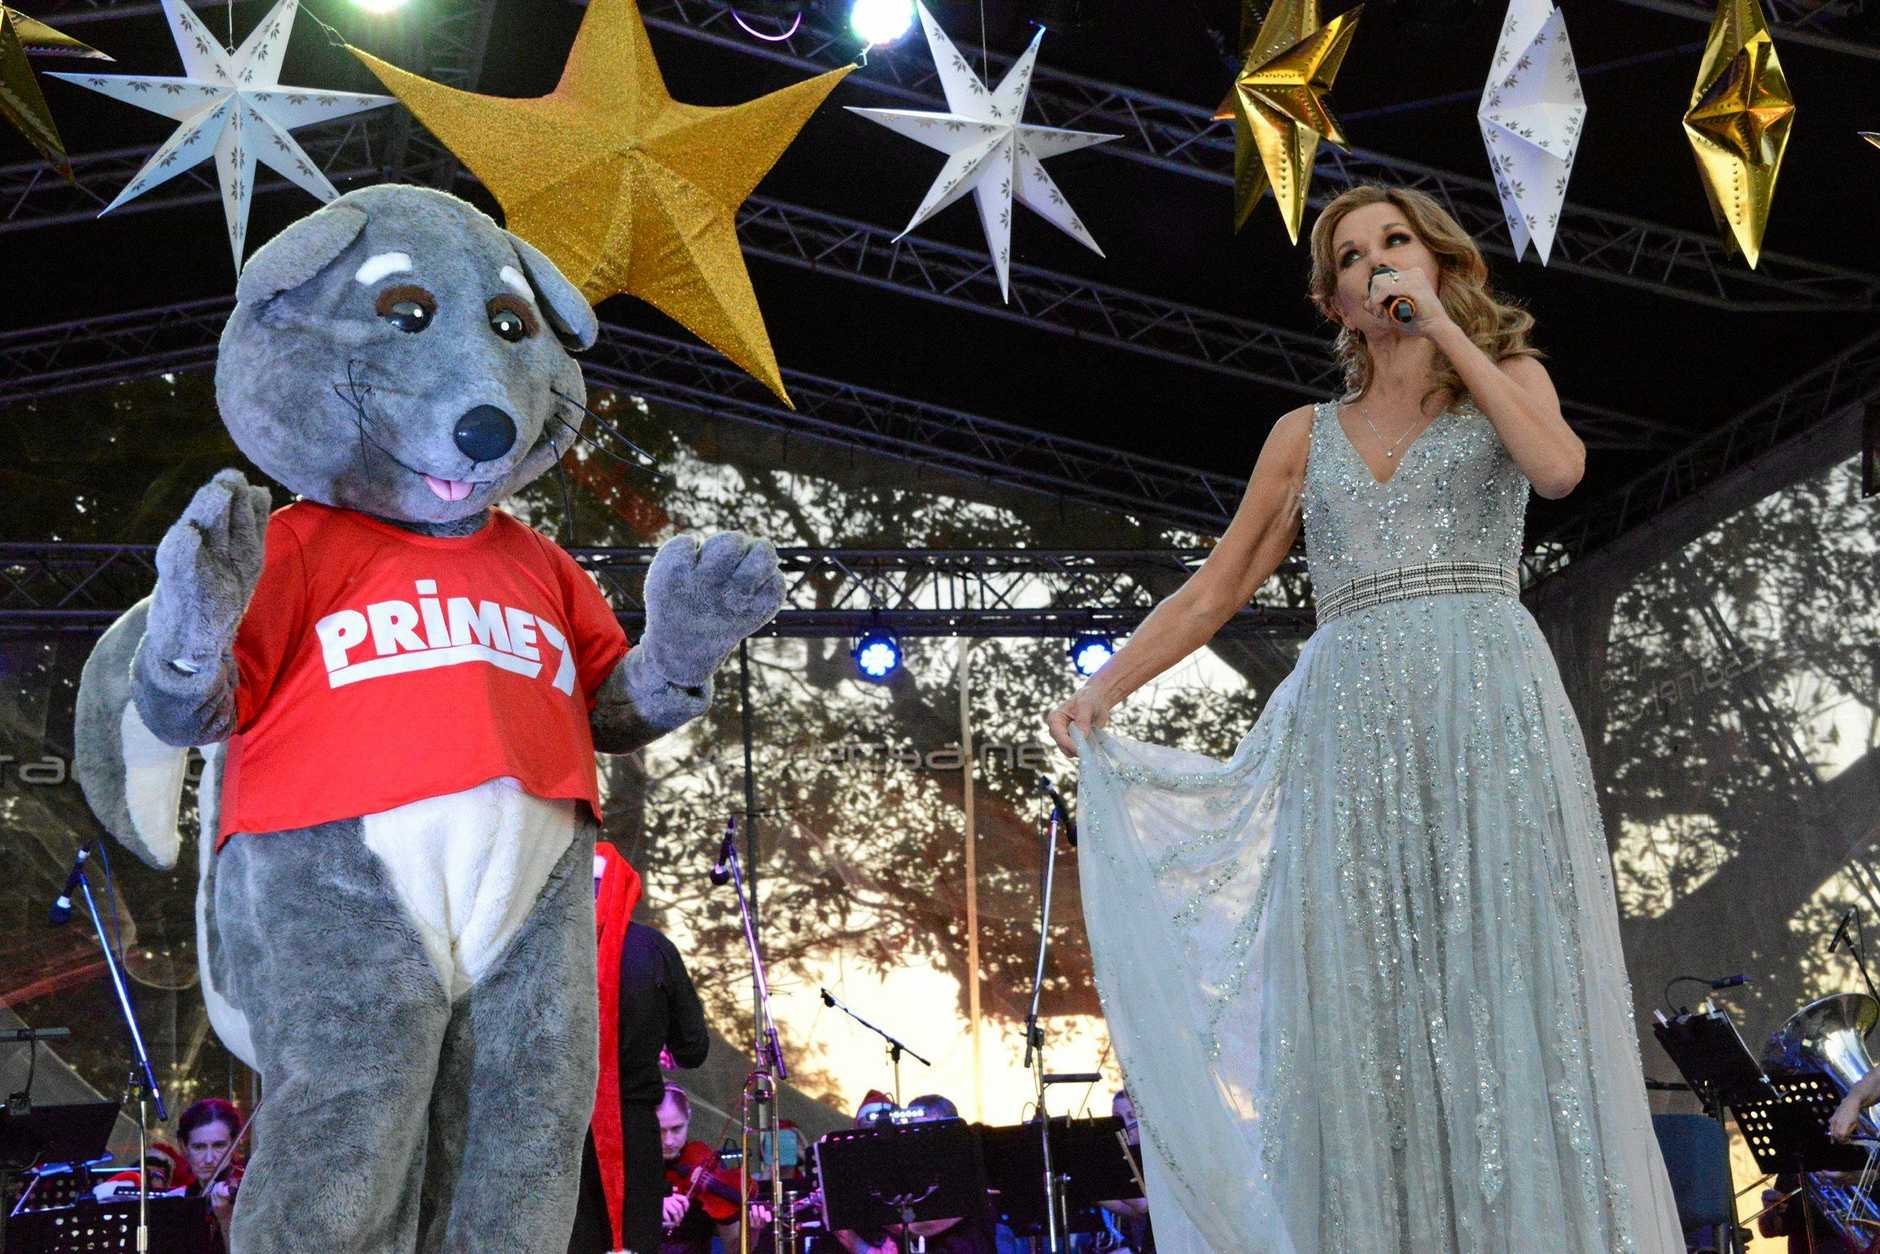 Cabaret star Rhonda Burchmore was a hit at this year's Carols by Candlelight at Alumny Creek.